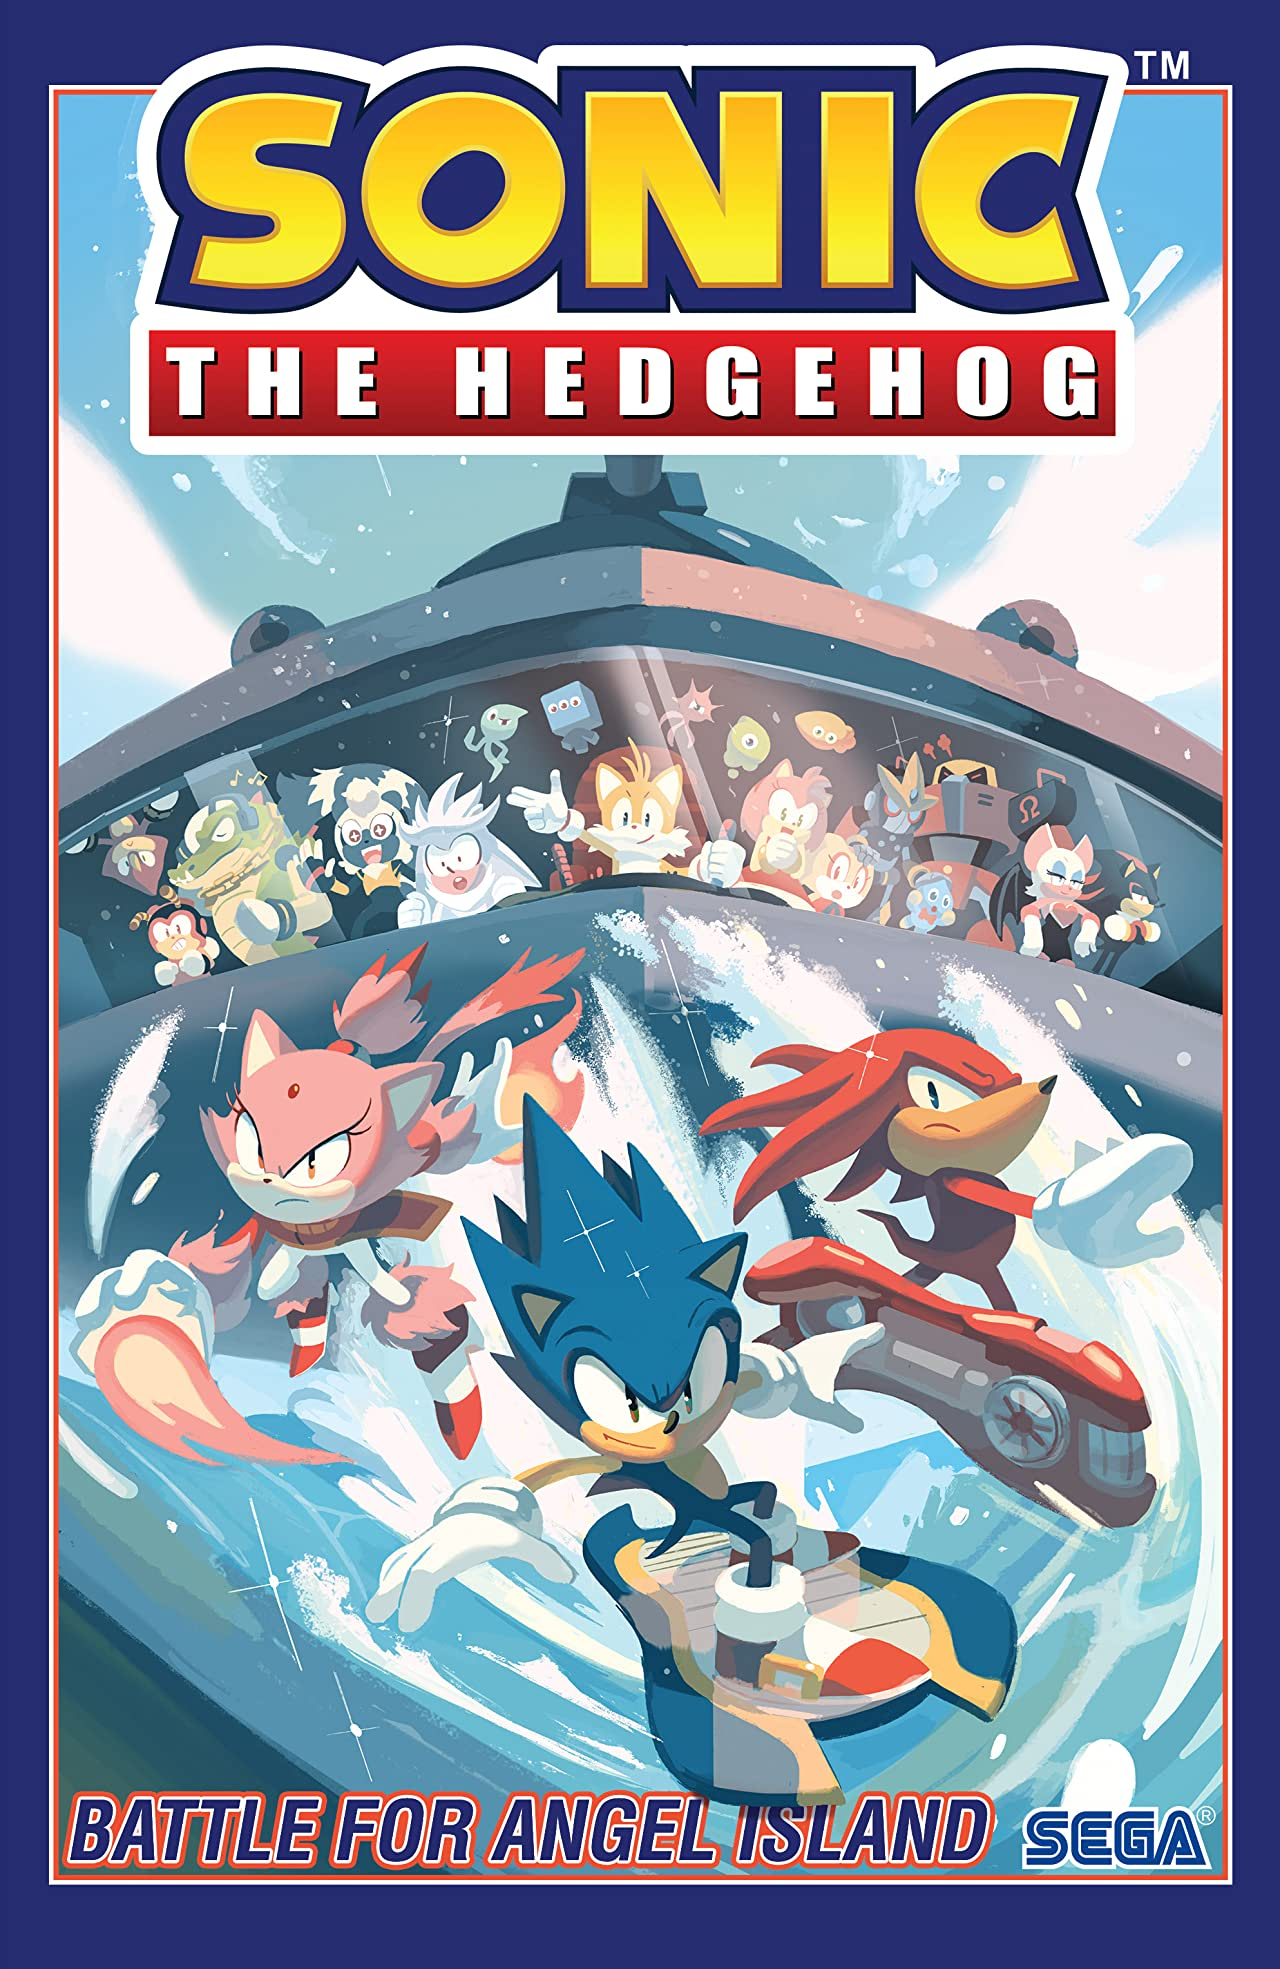 Sonic the Hedgehog Vol. 3: Battle For Angel Island